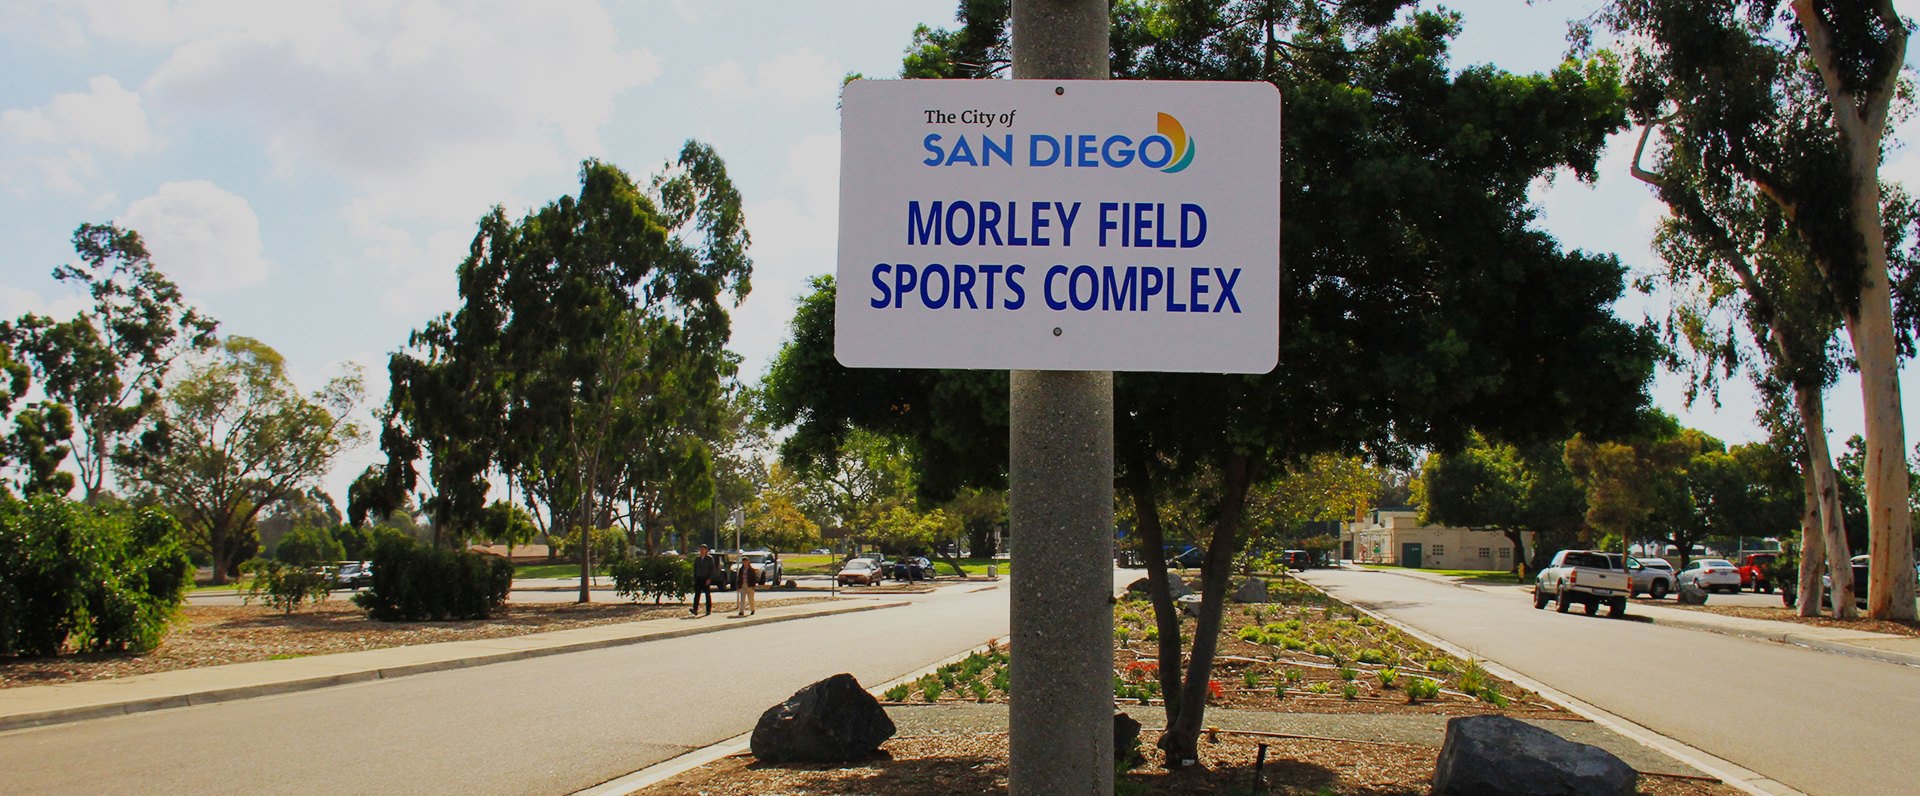 Morley Field Sports Complex